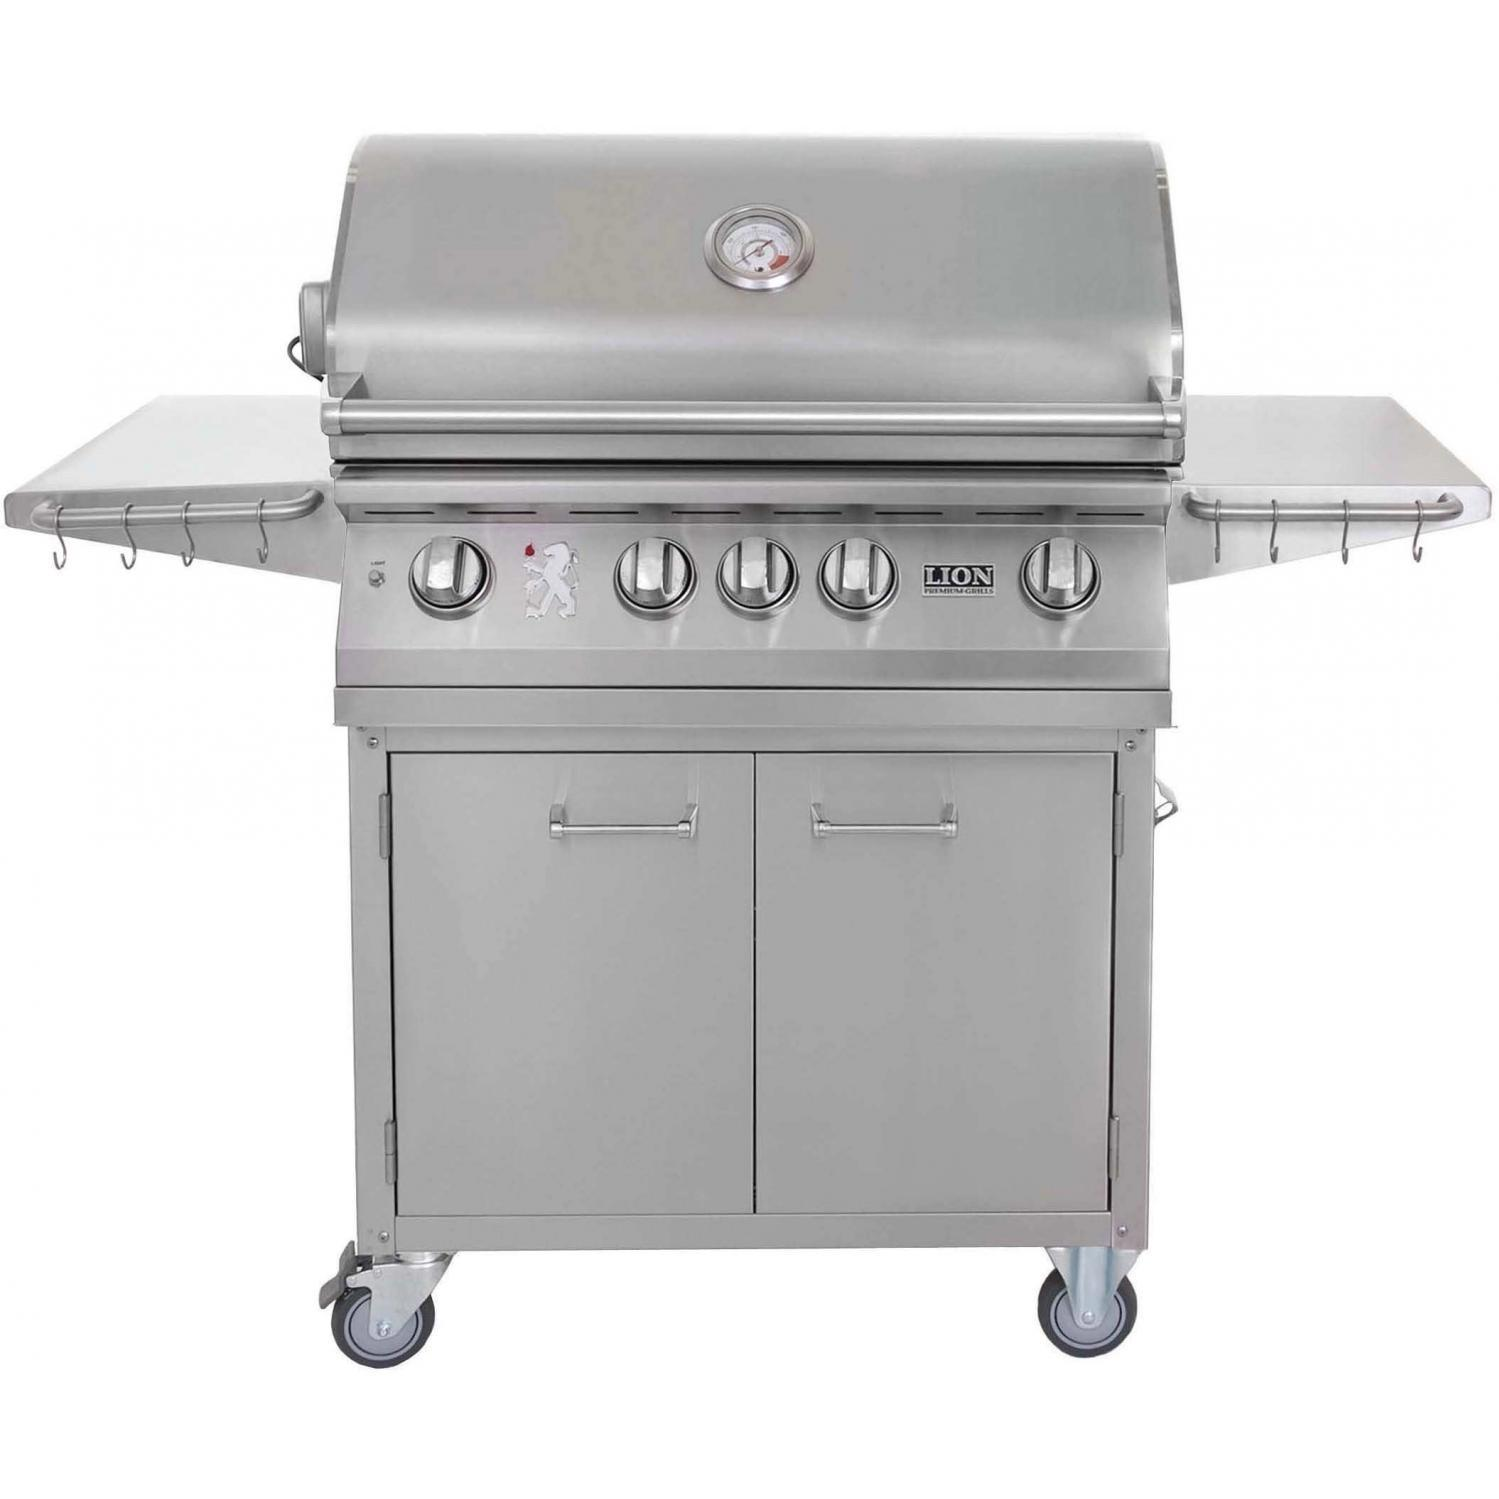 luxor charcoal grills 42 inch builtin charcoal grill open top similar items